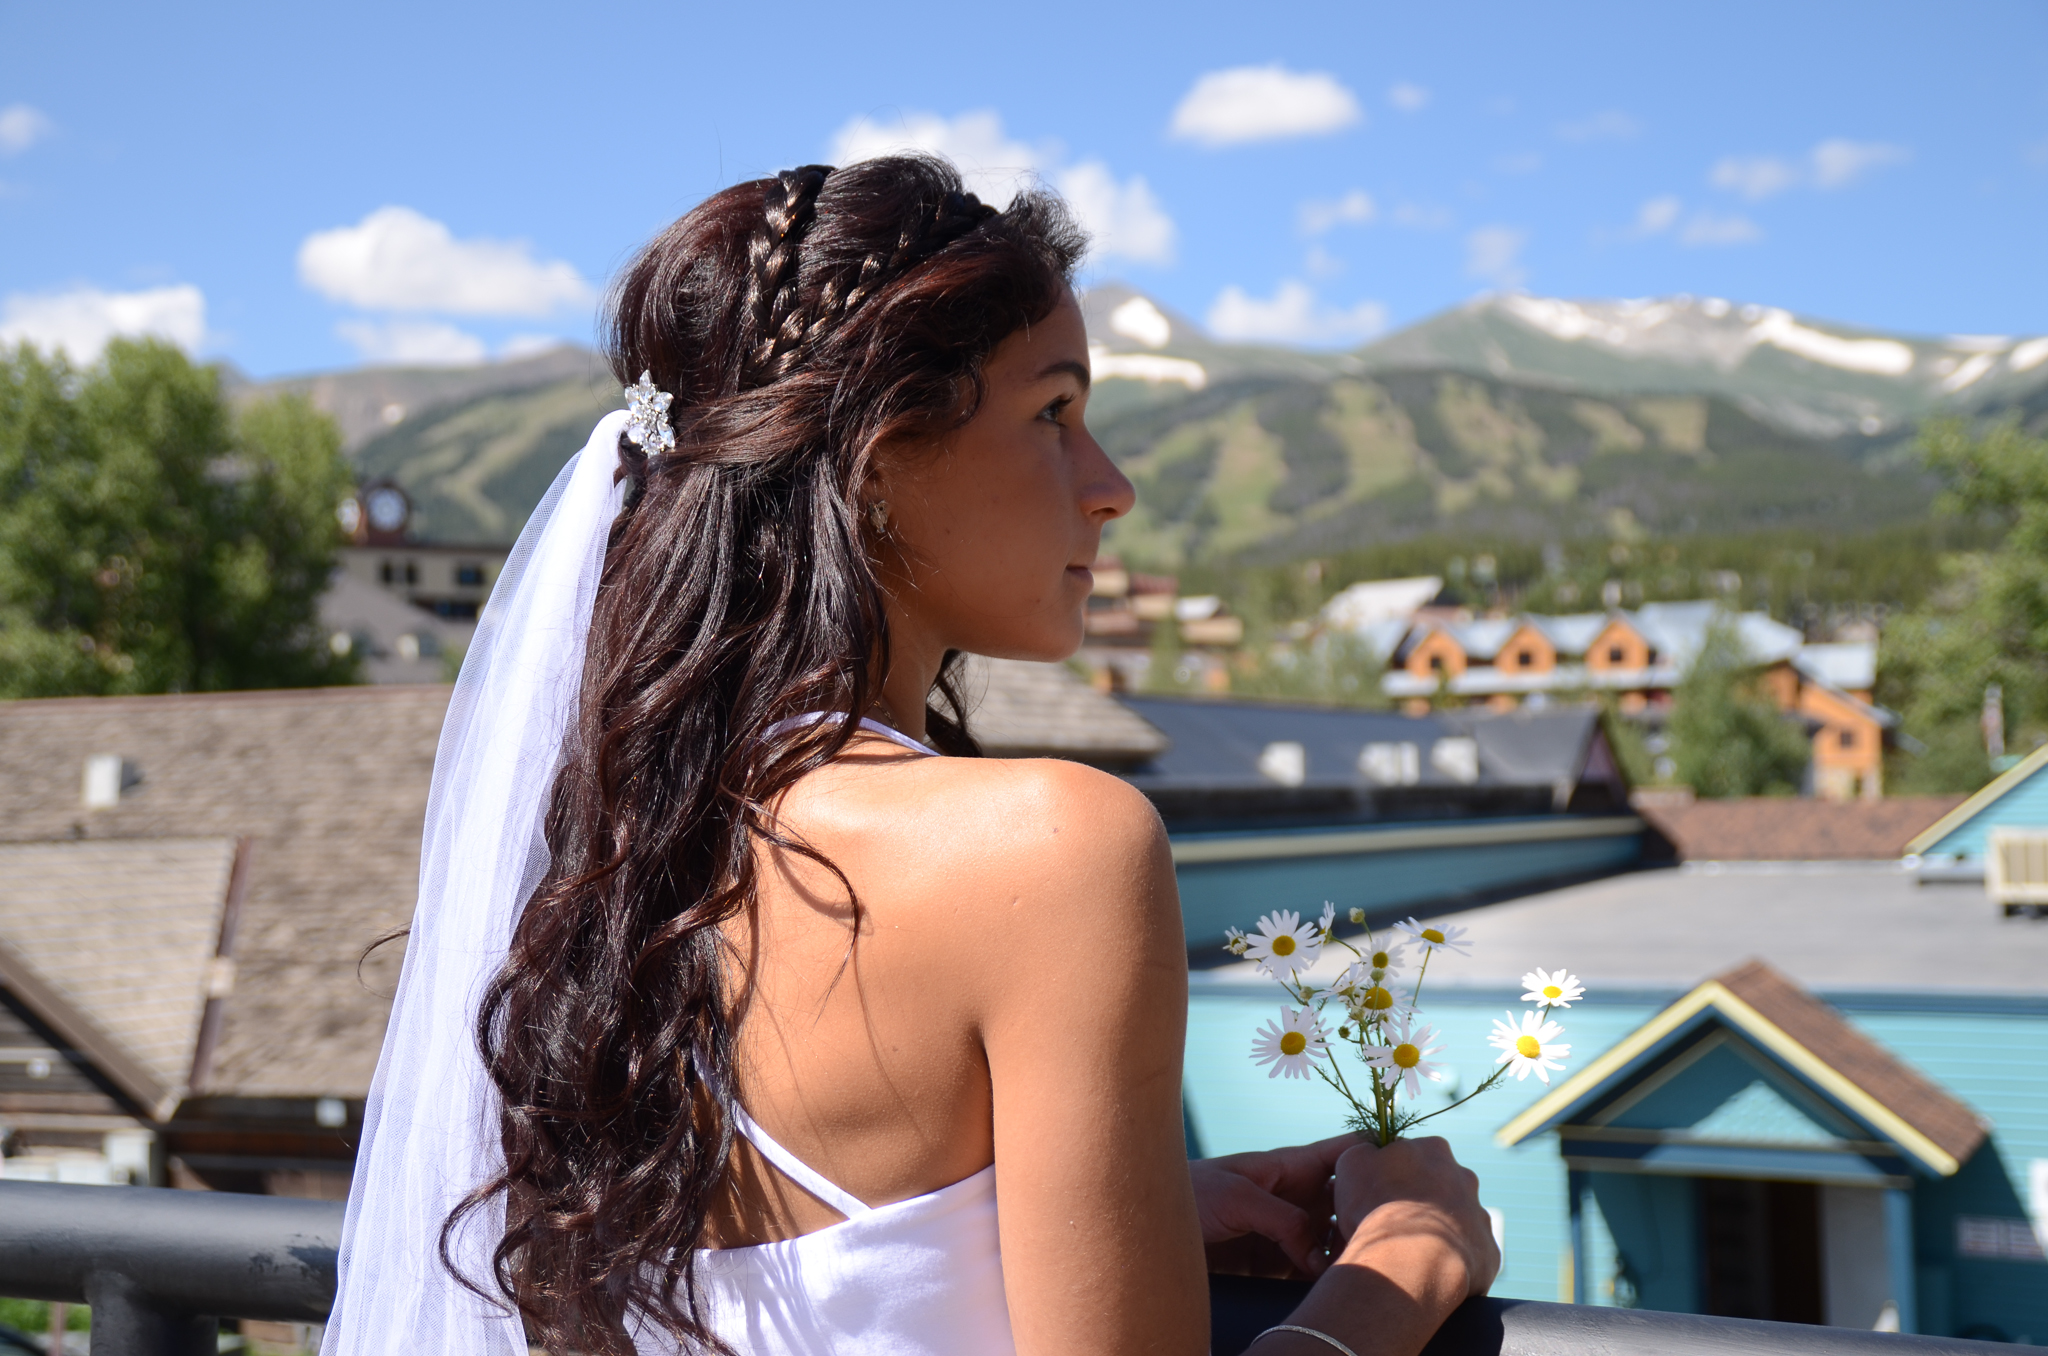 Majestic Mountain Beauty Wedding Hair and Makeup in - 2 Braid Hairstyles